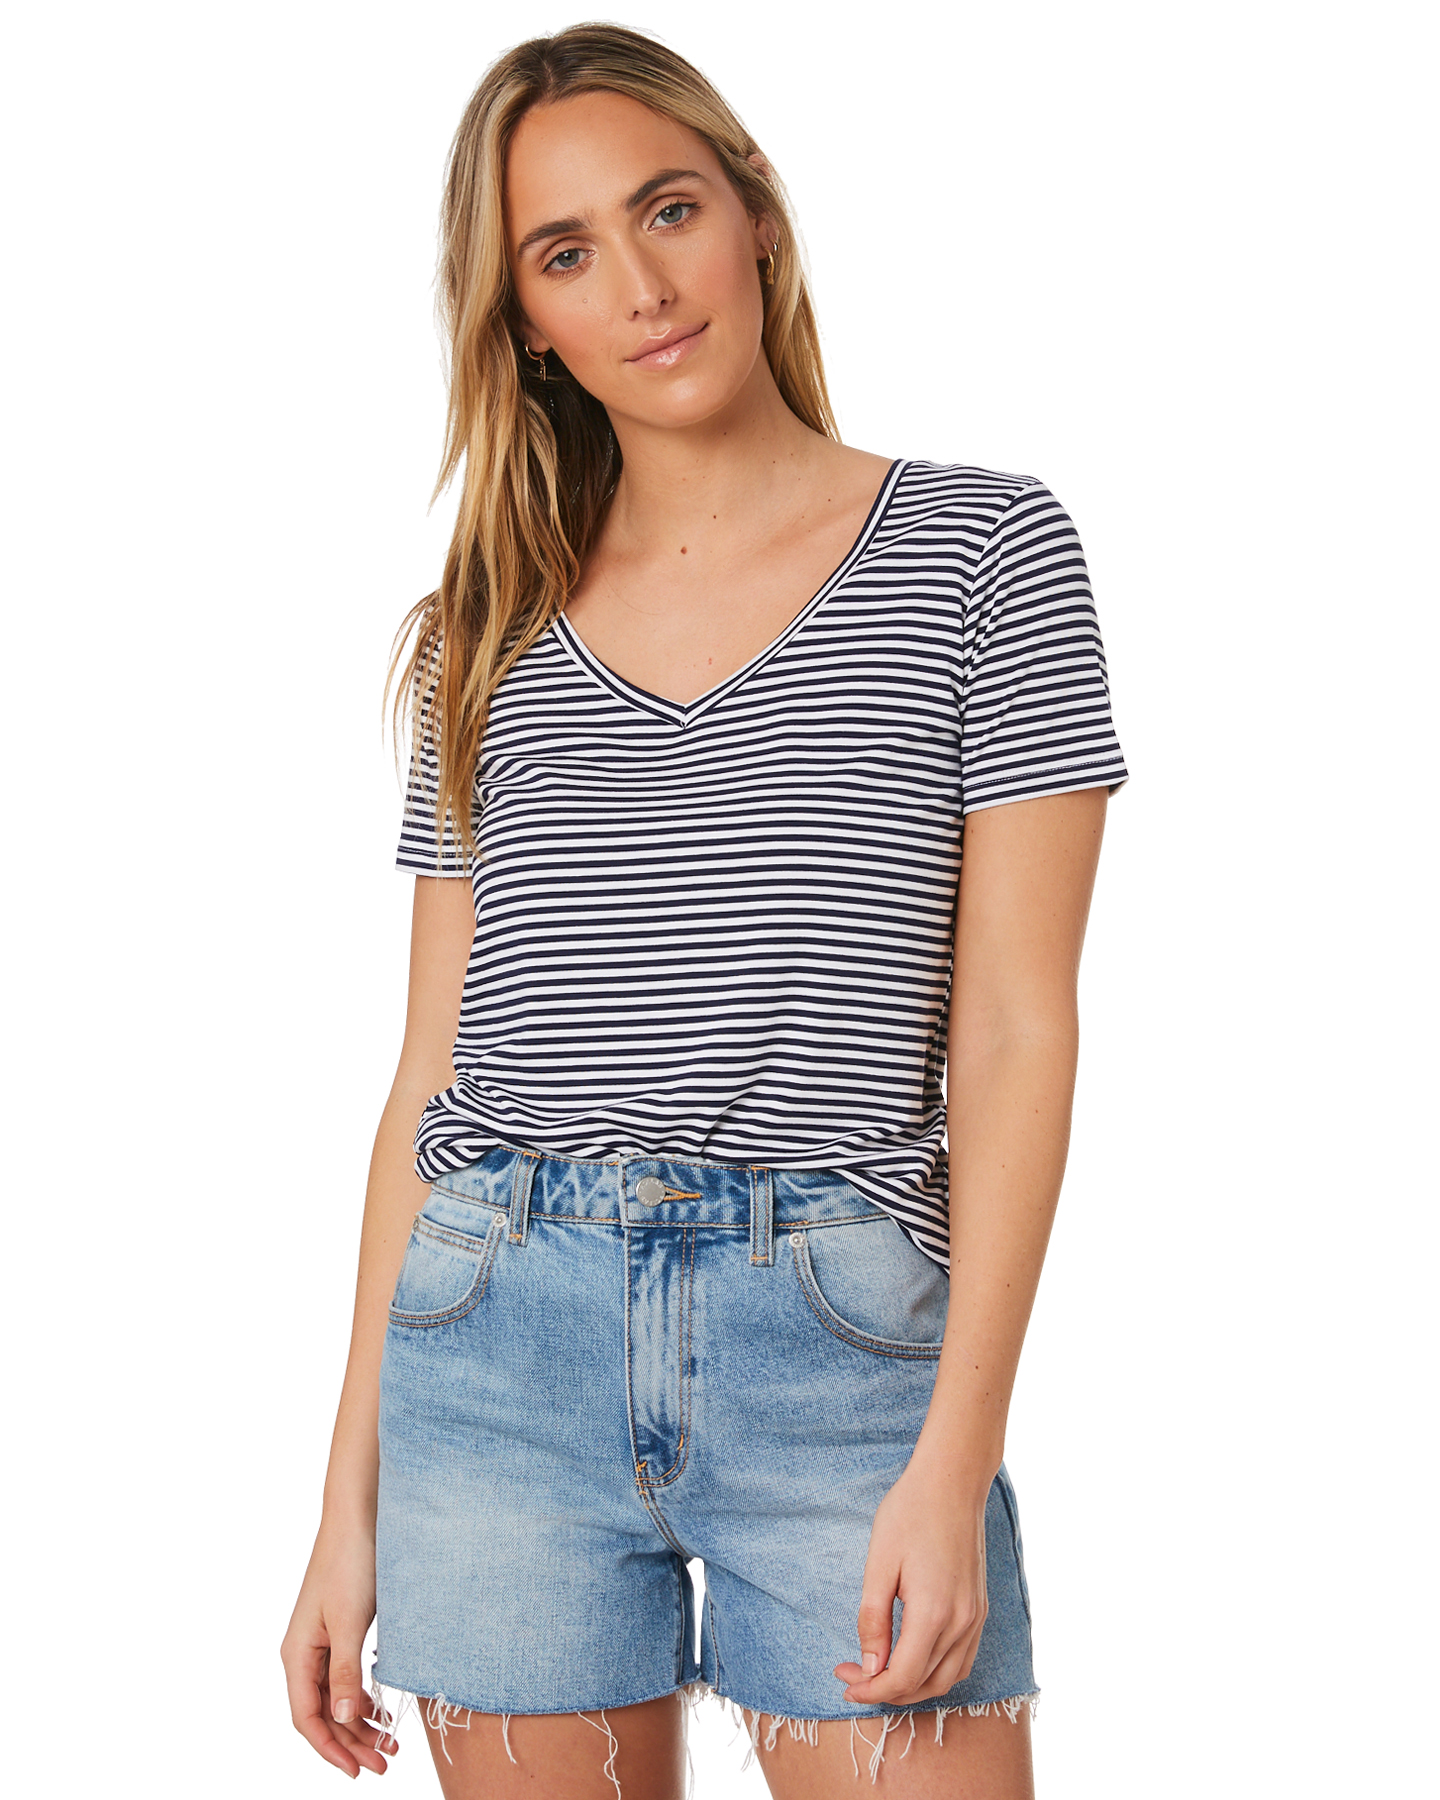 Betty Basics Manhattan V Neck Tee Navy White Stripe Navy White Stripe